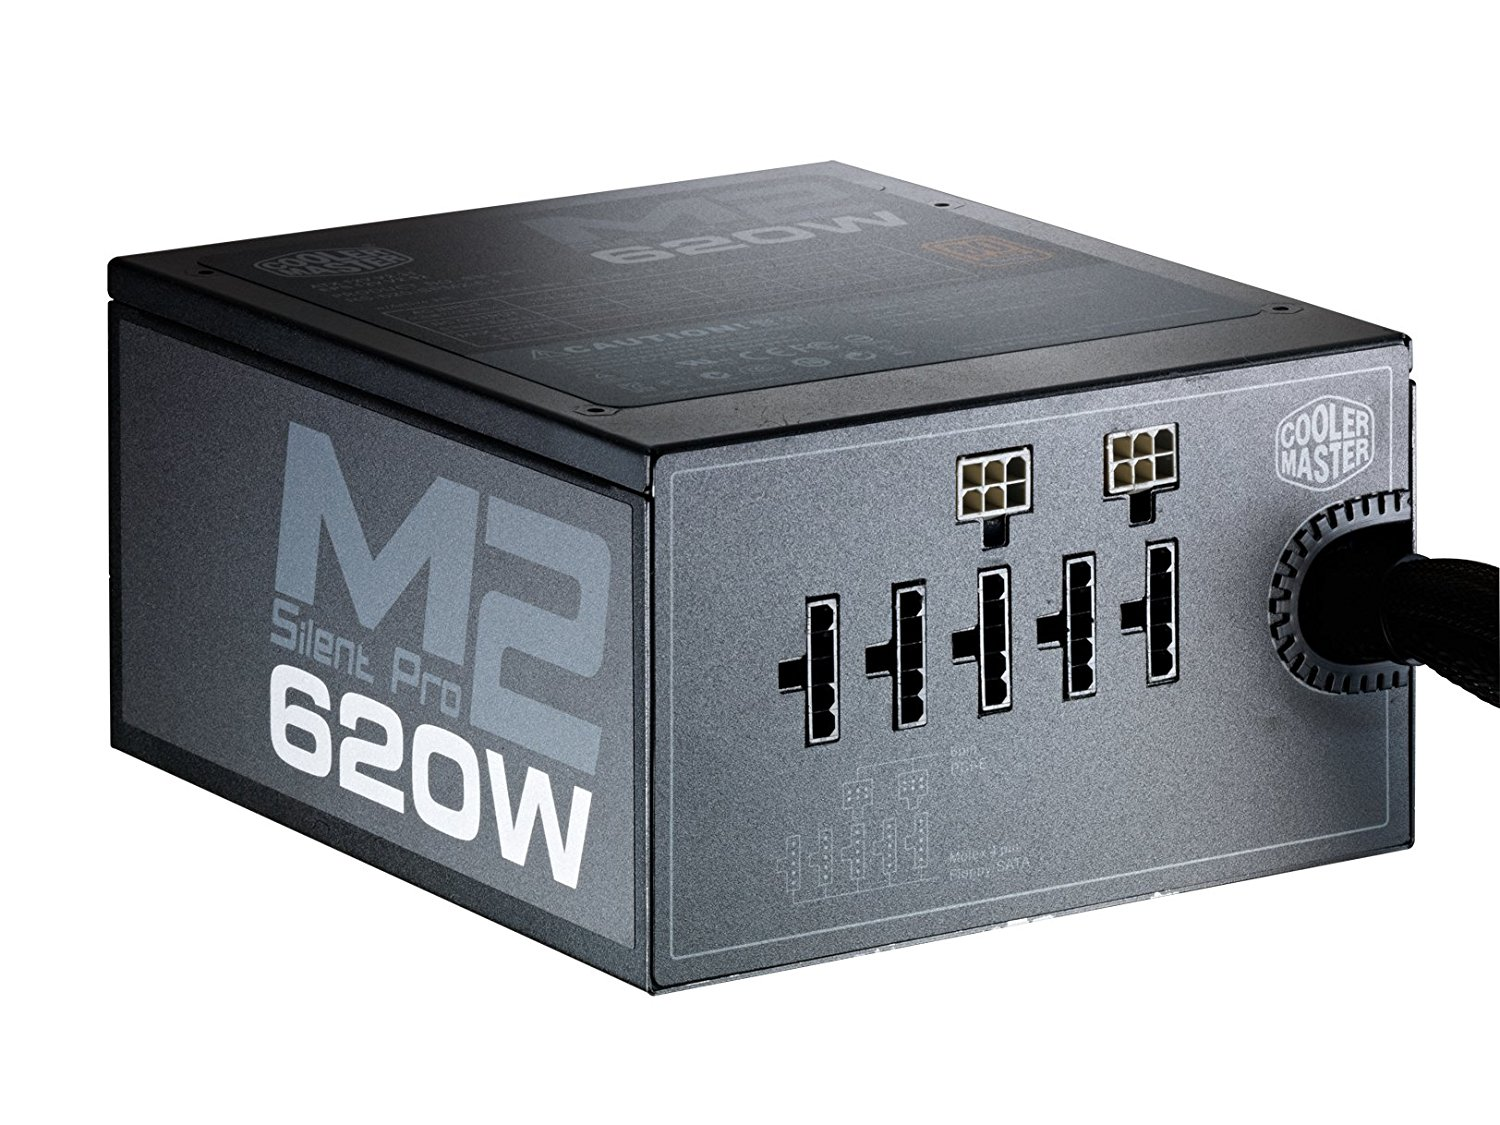 Cooler Master Silent Pro M2 1500w 80 Plus Silver Power Supply With